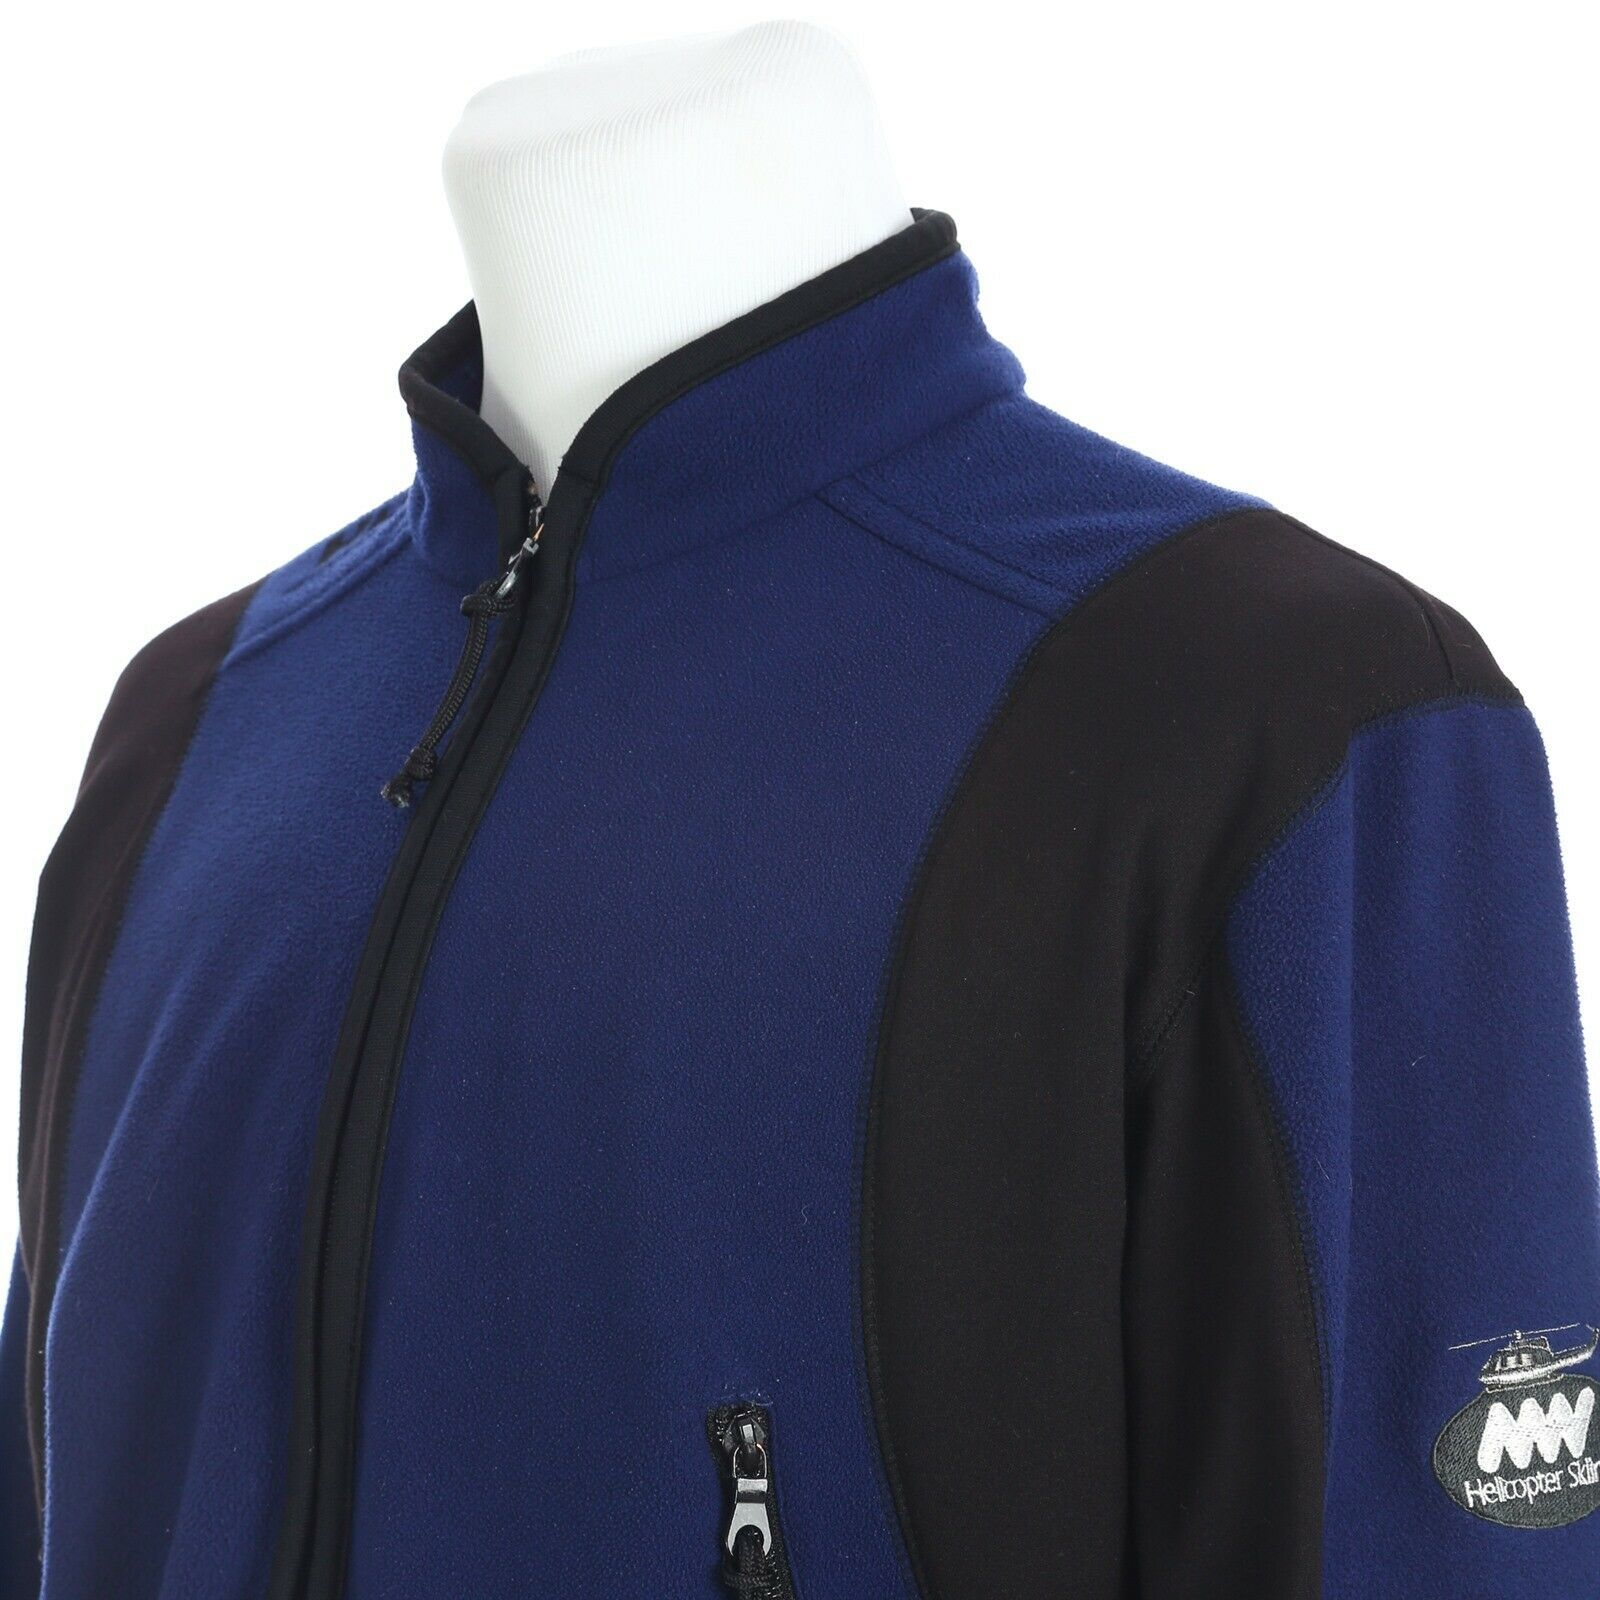 Primary image for Helly Hansen Full Zip Outdoor Ski Fleece Jacket Coat Mens Large Blue Black